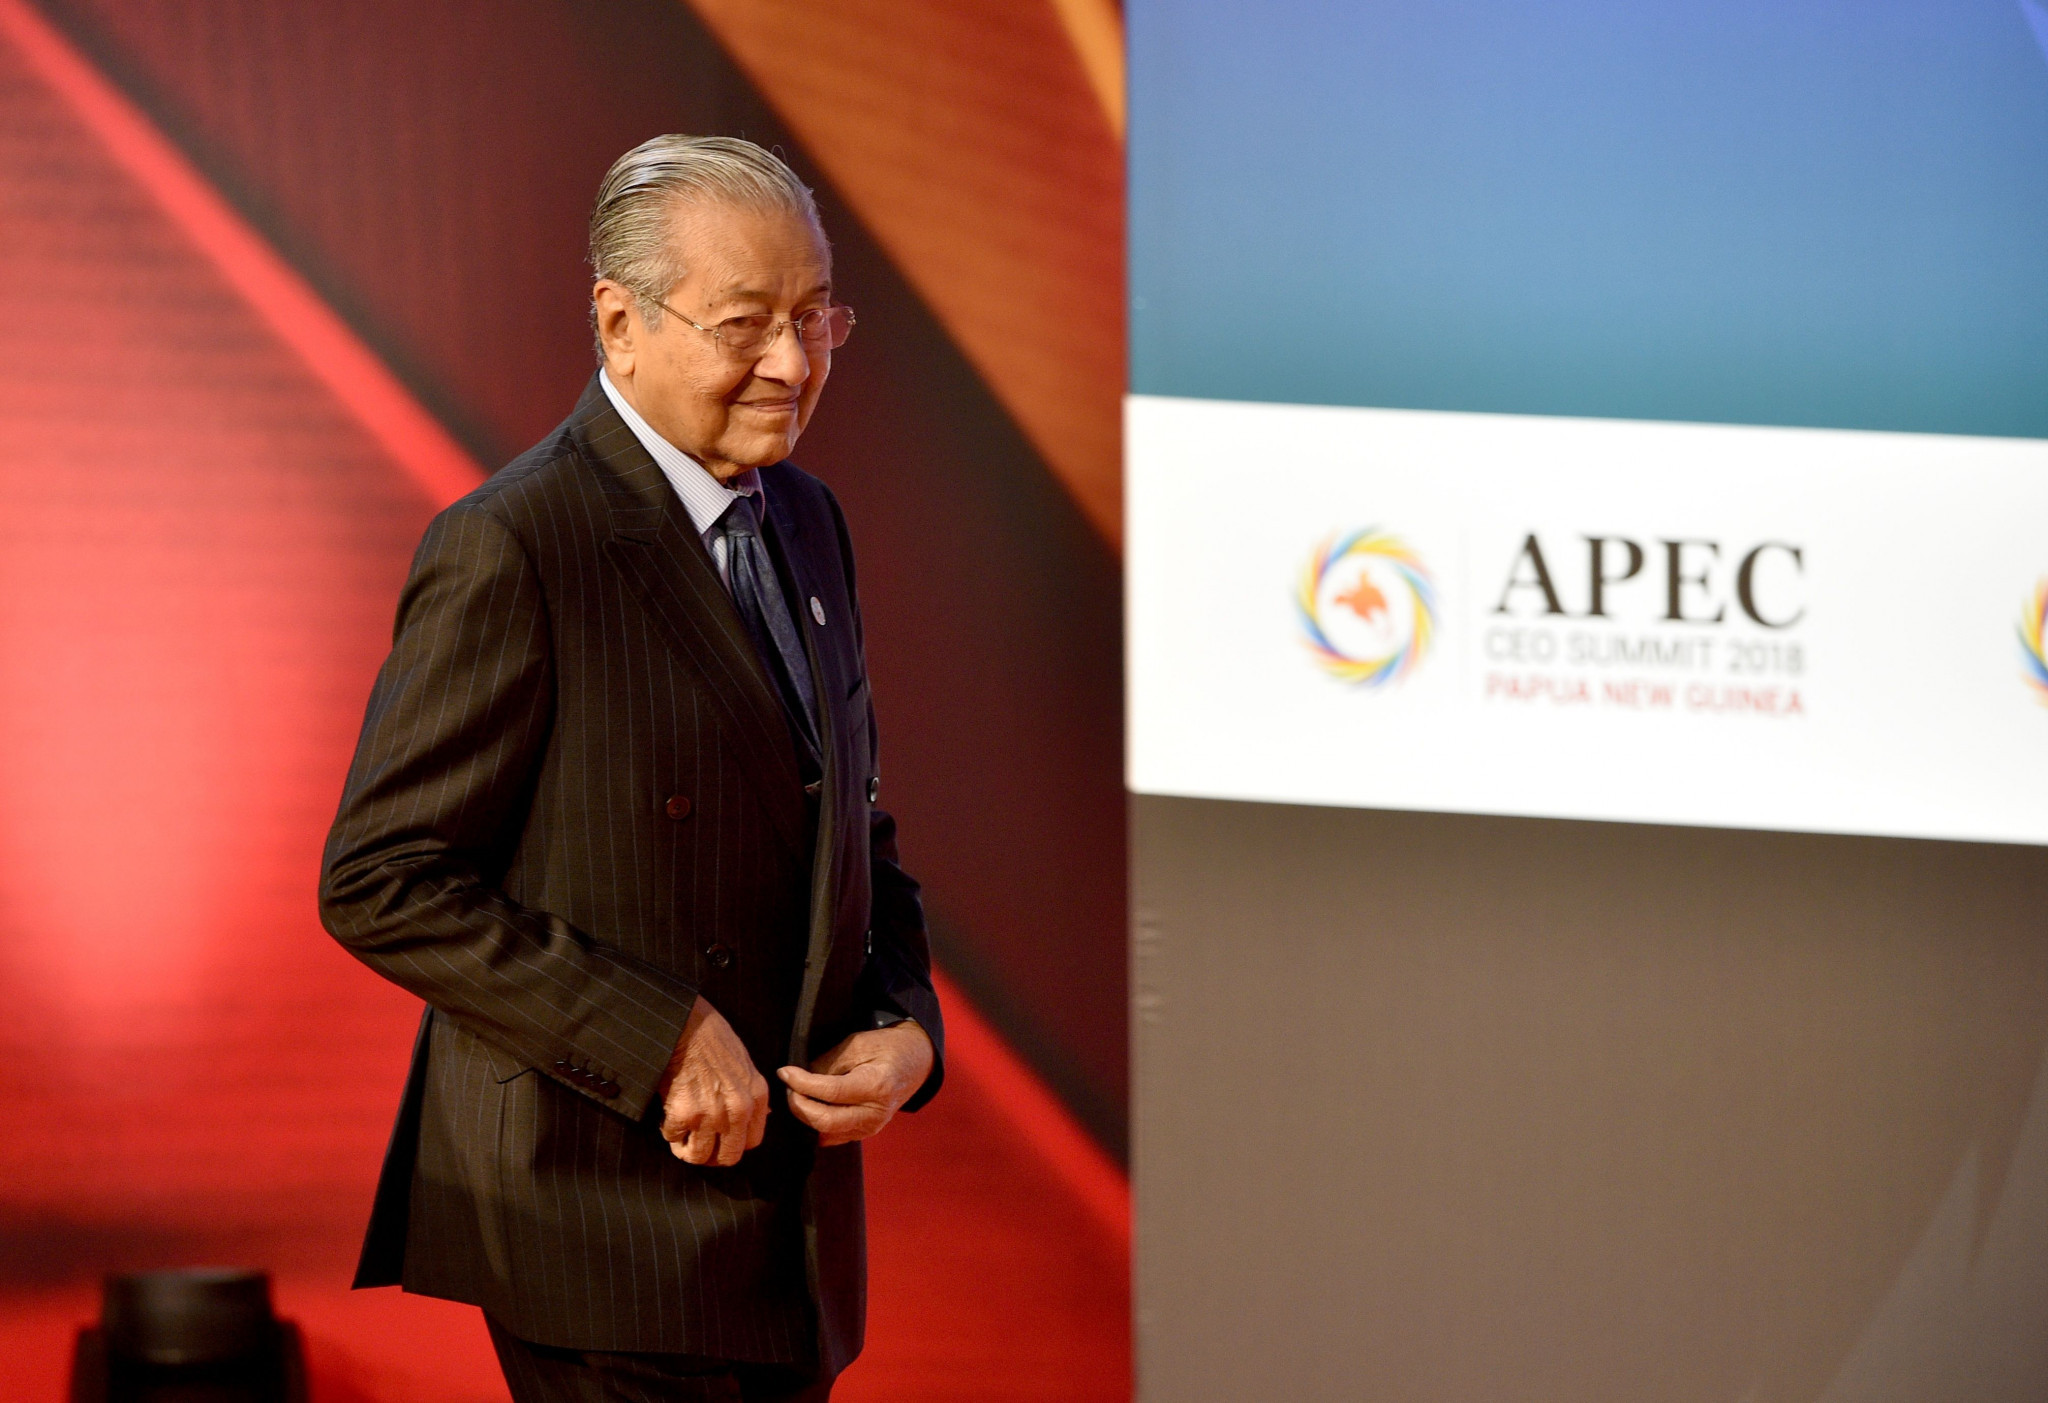 Malaysian Prime Minister, Mahathir Mohamad, had claimed earlier this month that there was